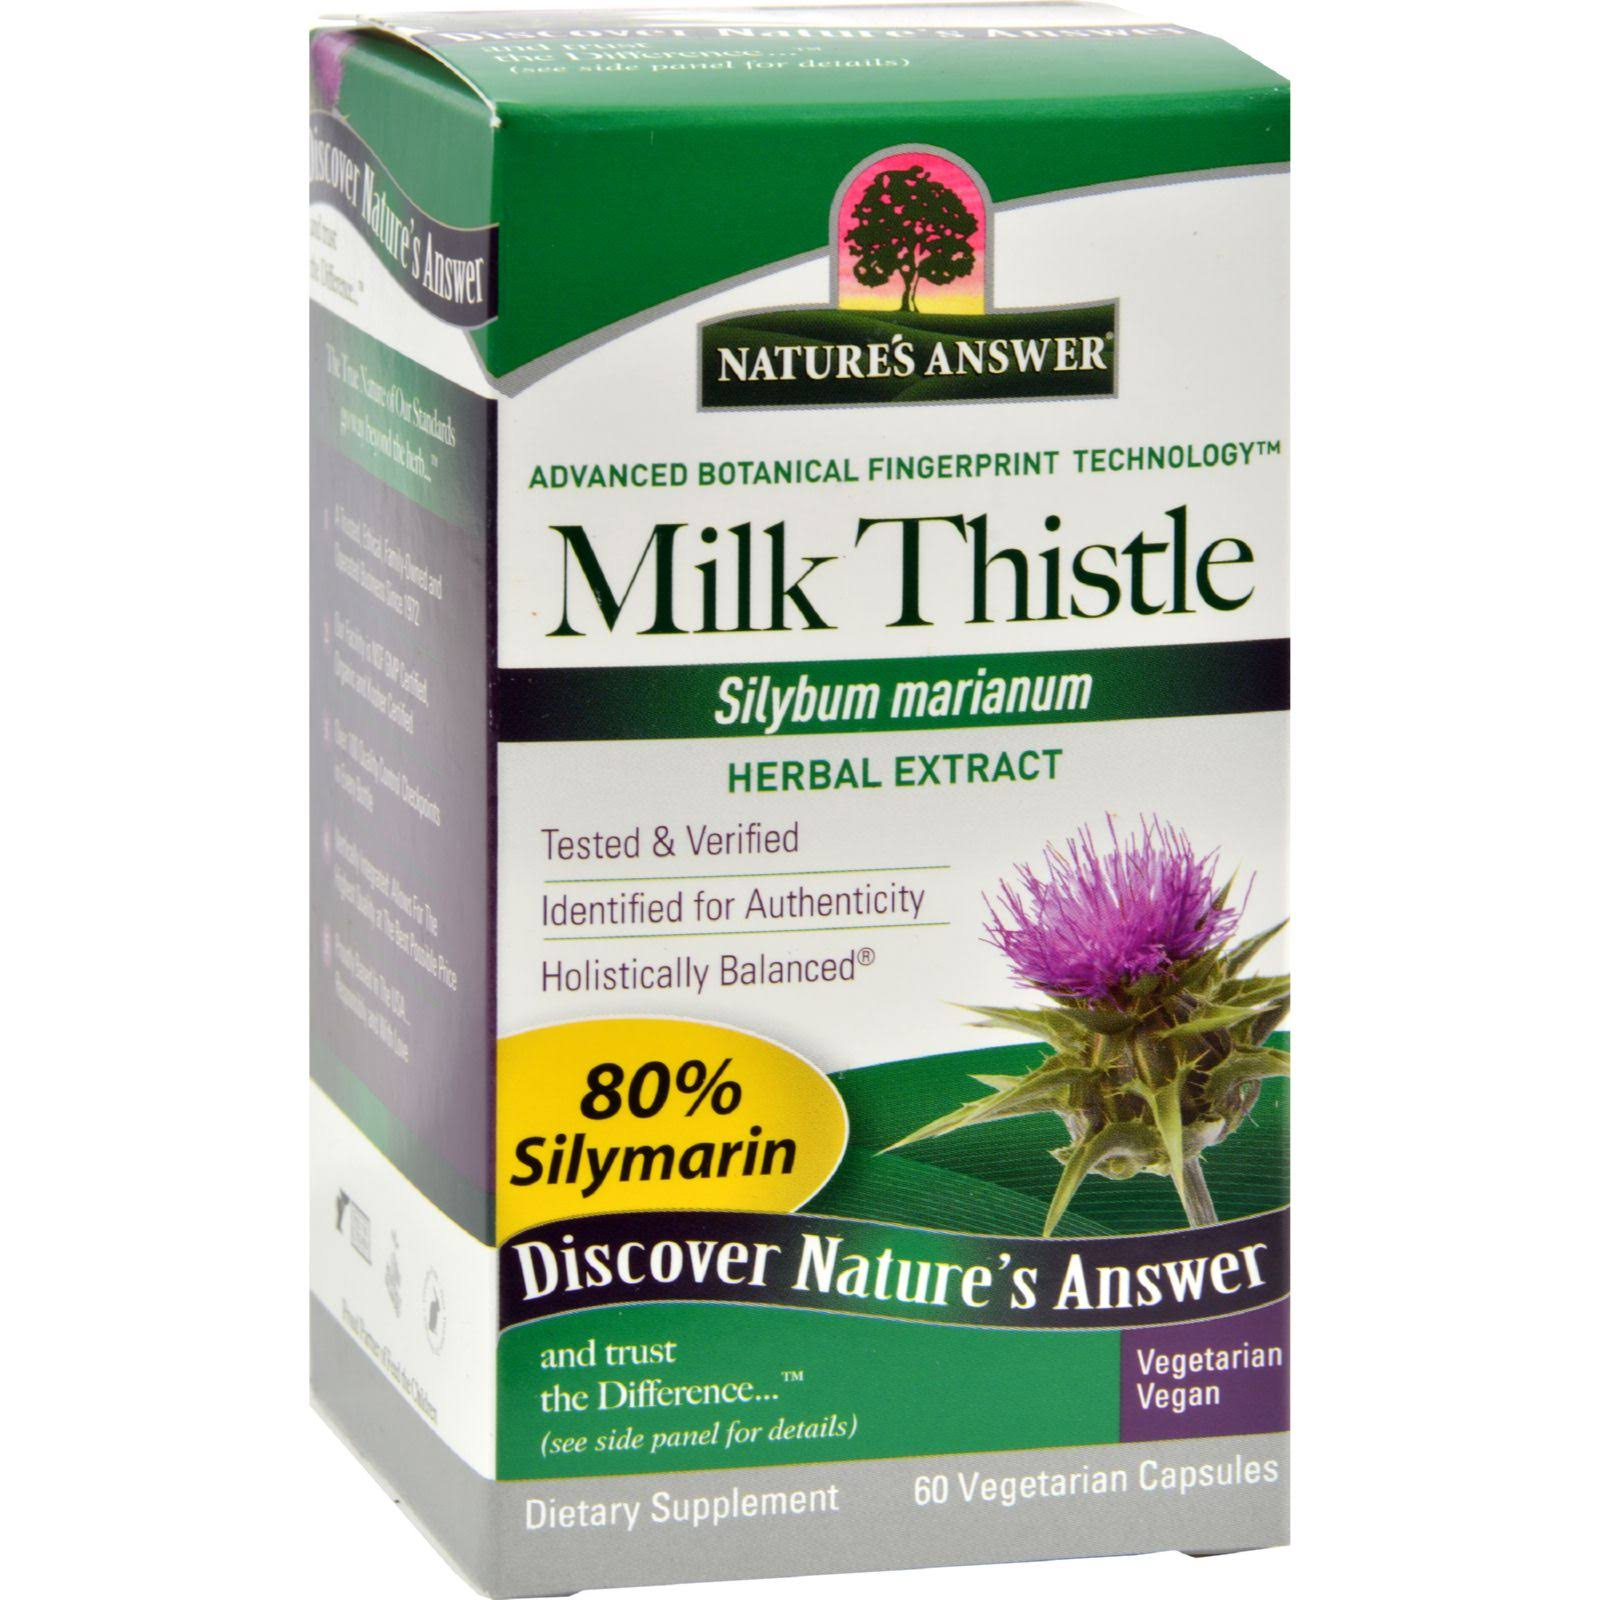 Nature's Answer Milk Thistle Seed Extract Vegetarian Capsules - x60